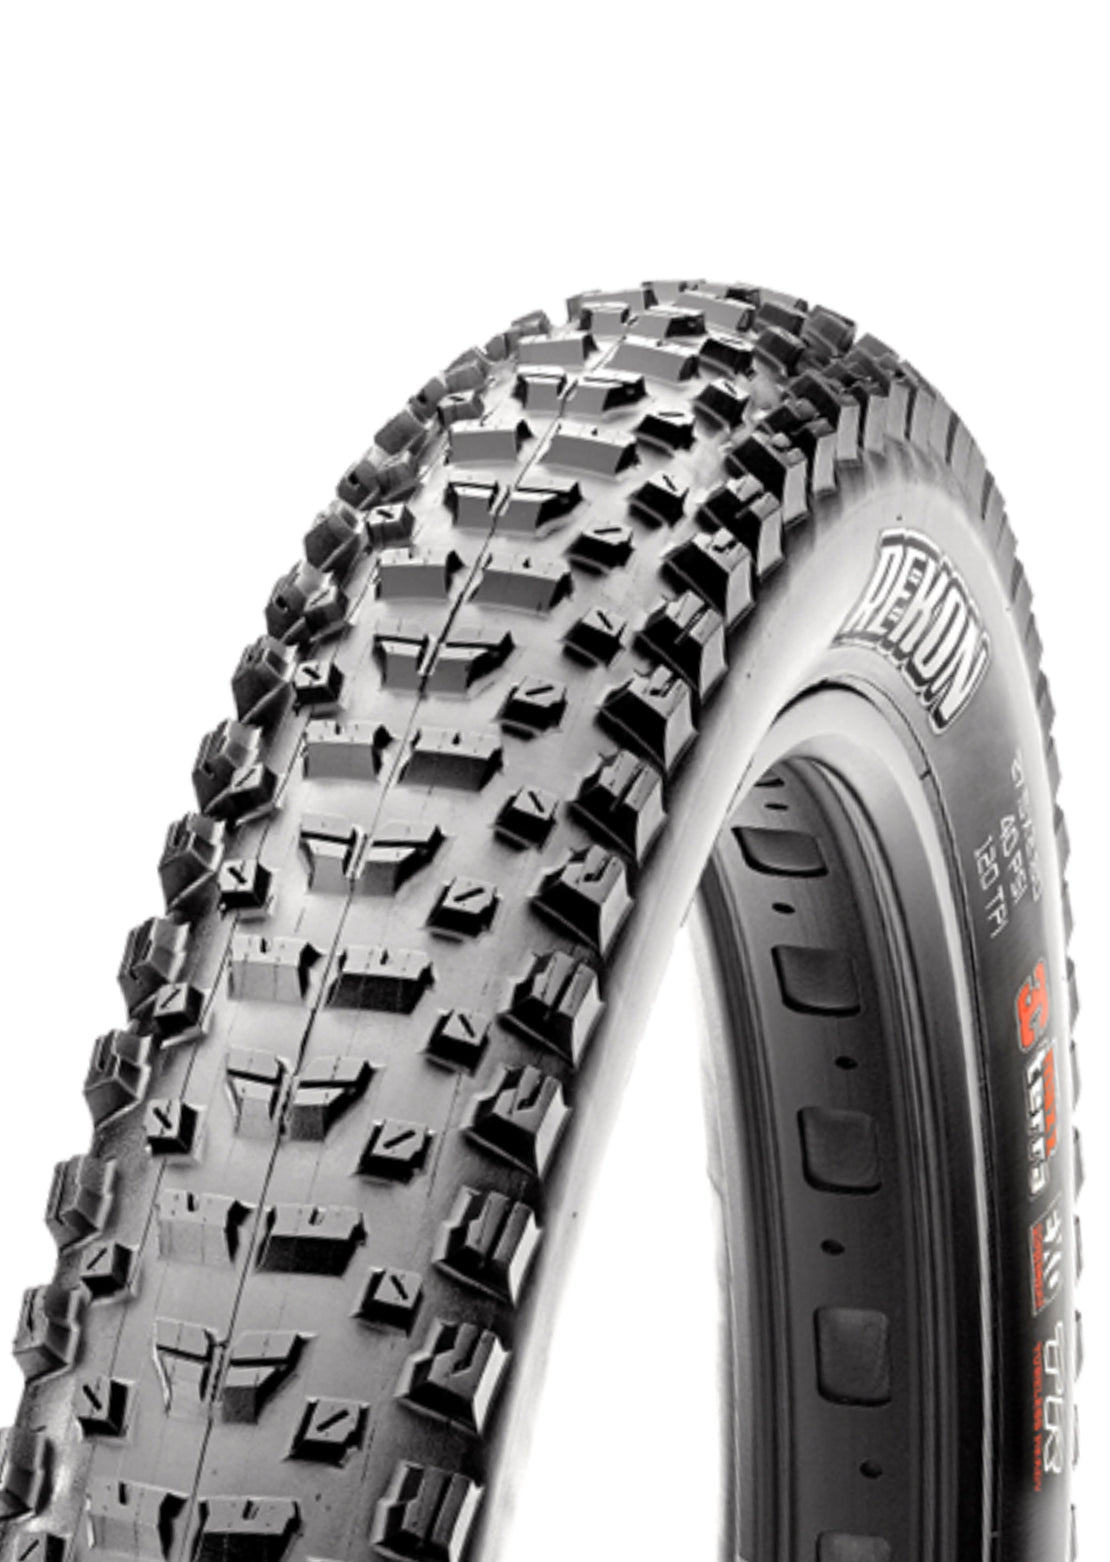 Maxxis Mountain Rekon+ 27.5 '' x 2.8 Mountain Bike Tires Black